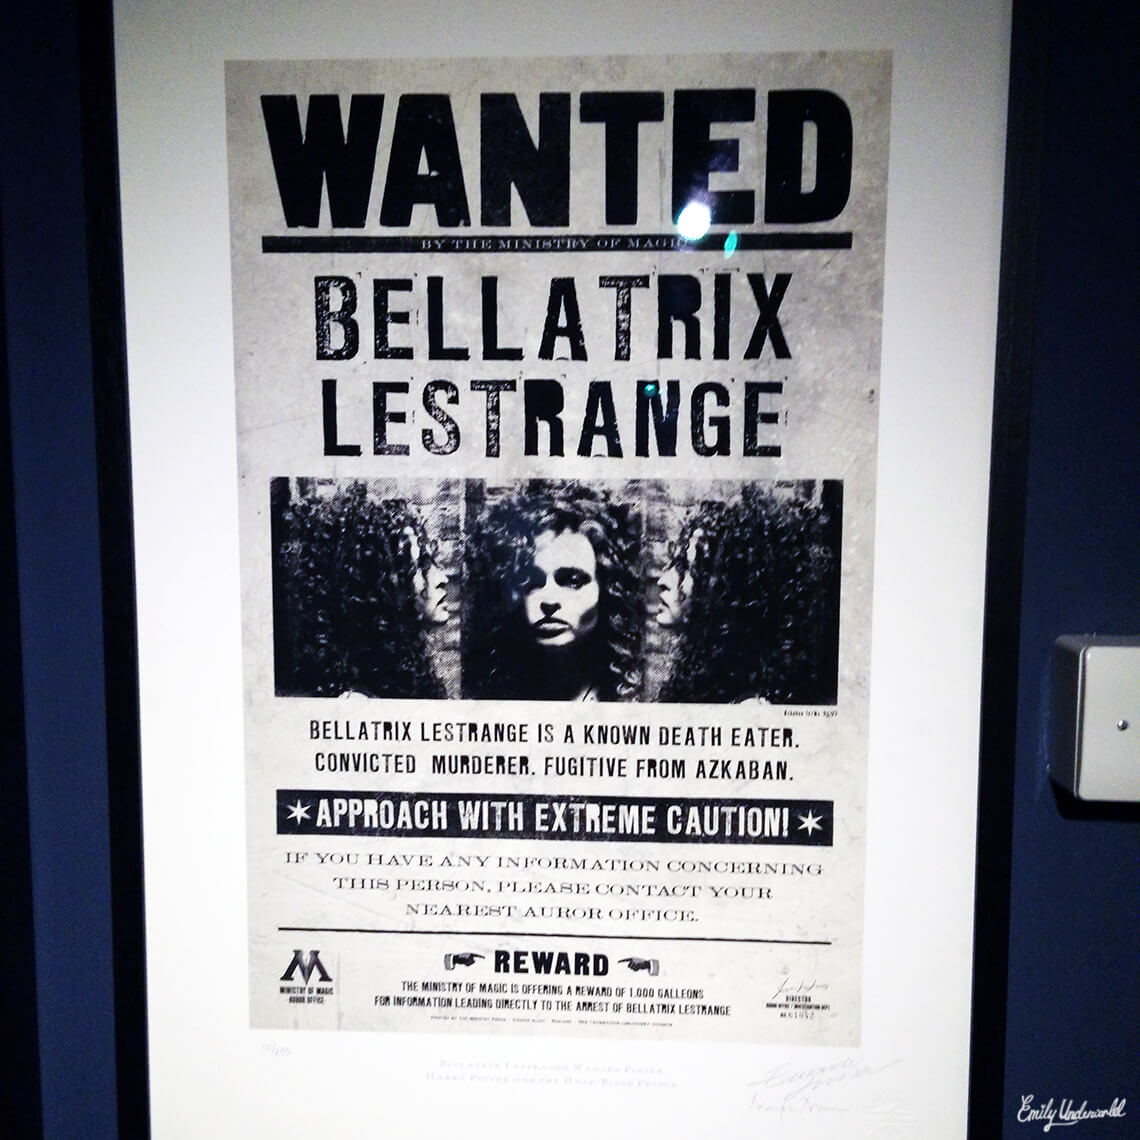 wanted-bellatrix-lestrange